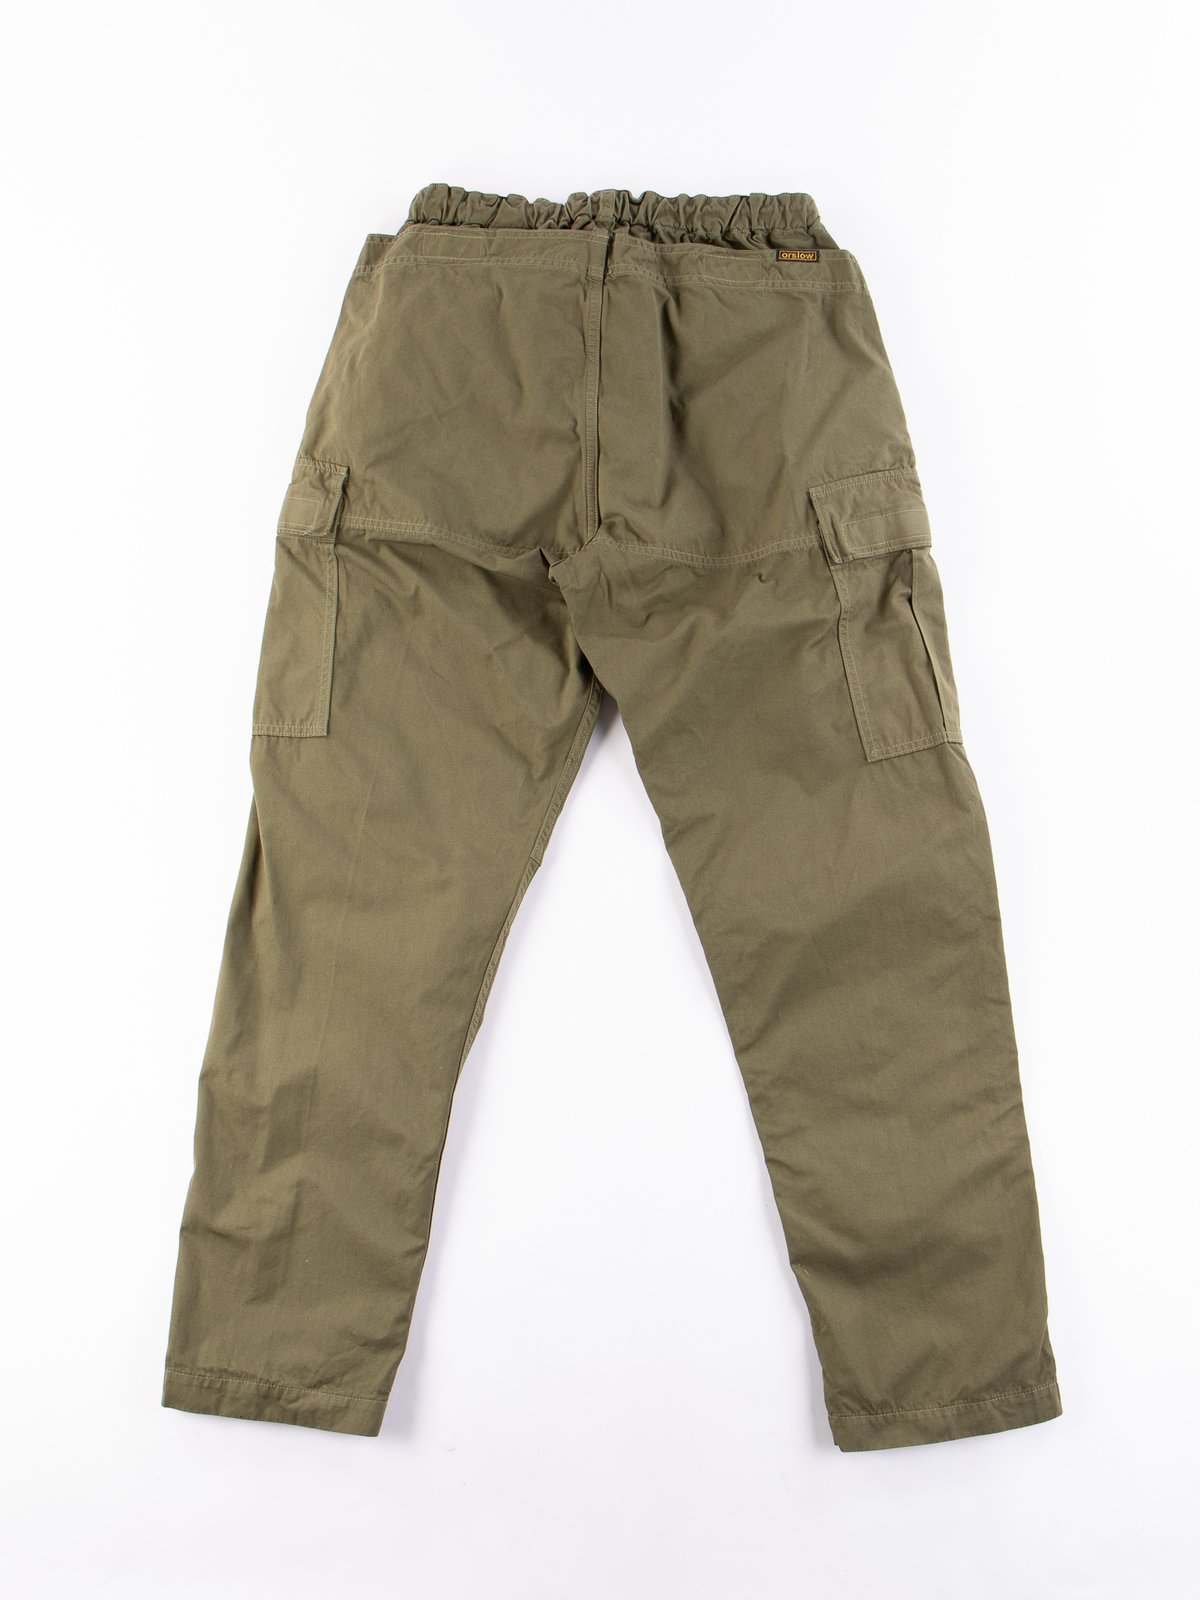 Army Weather Cloth Easy Cargo Pant - Image 7